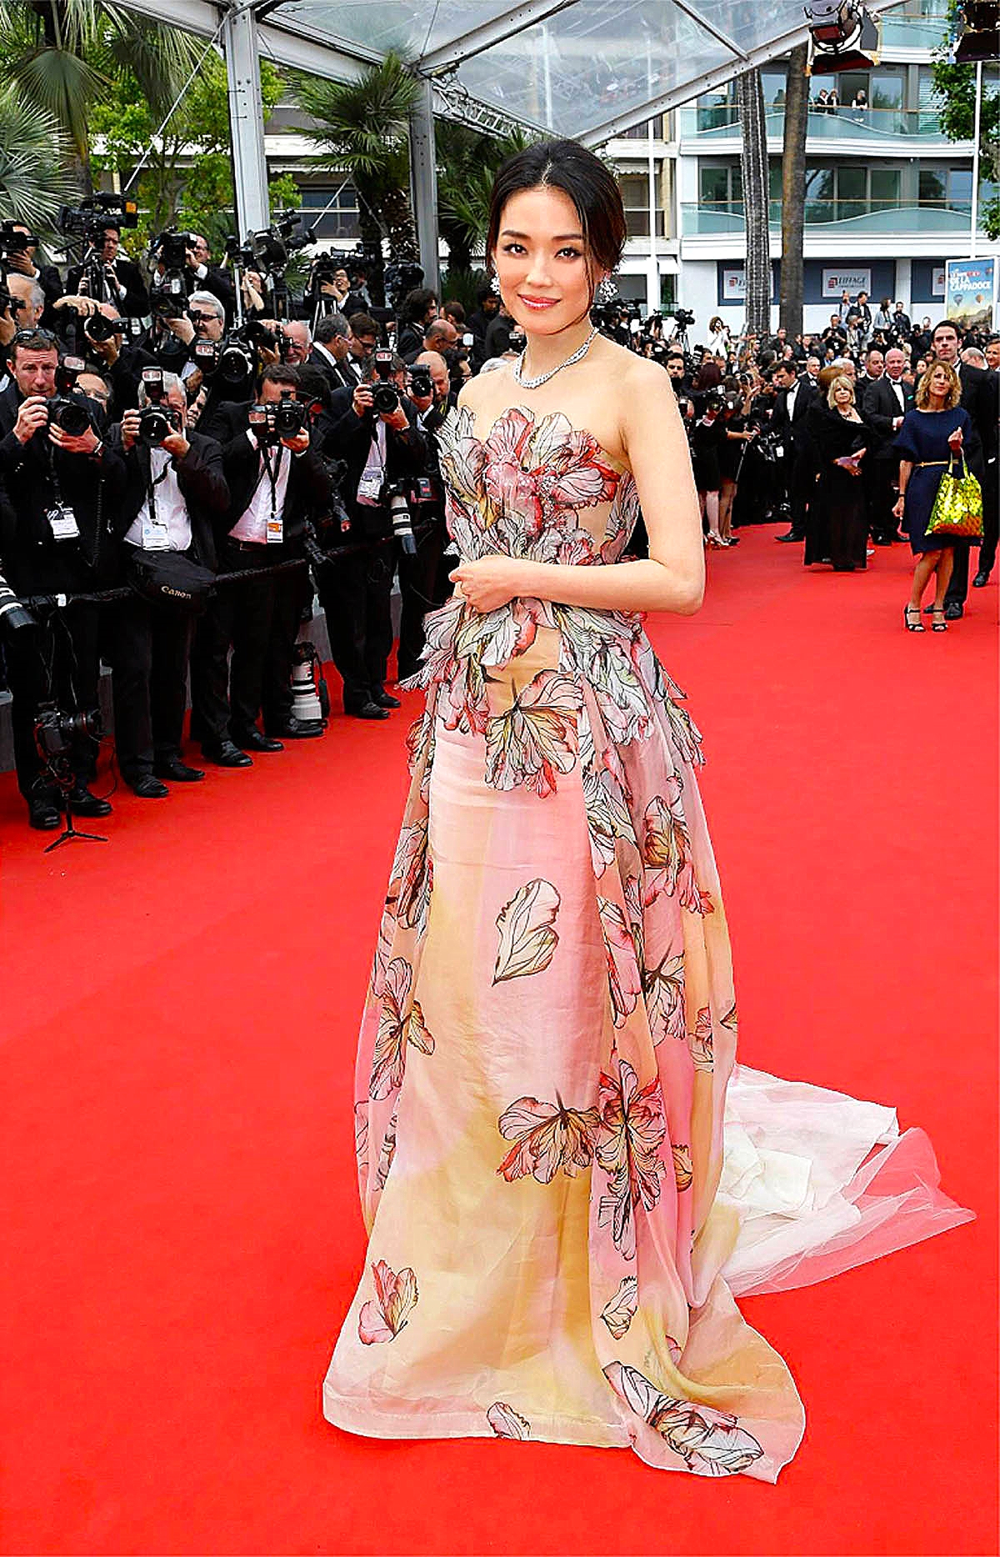 Taiwanese actress Shu Qi  in Ellie Saab Couture                          eliesaabworld/ facebook.com